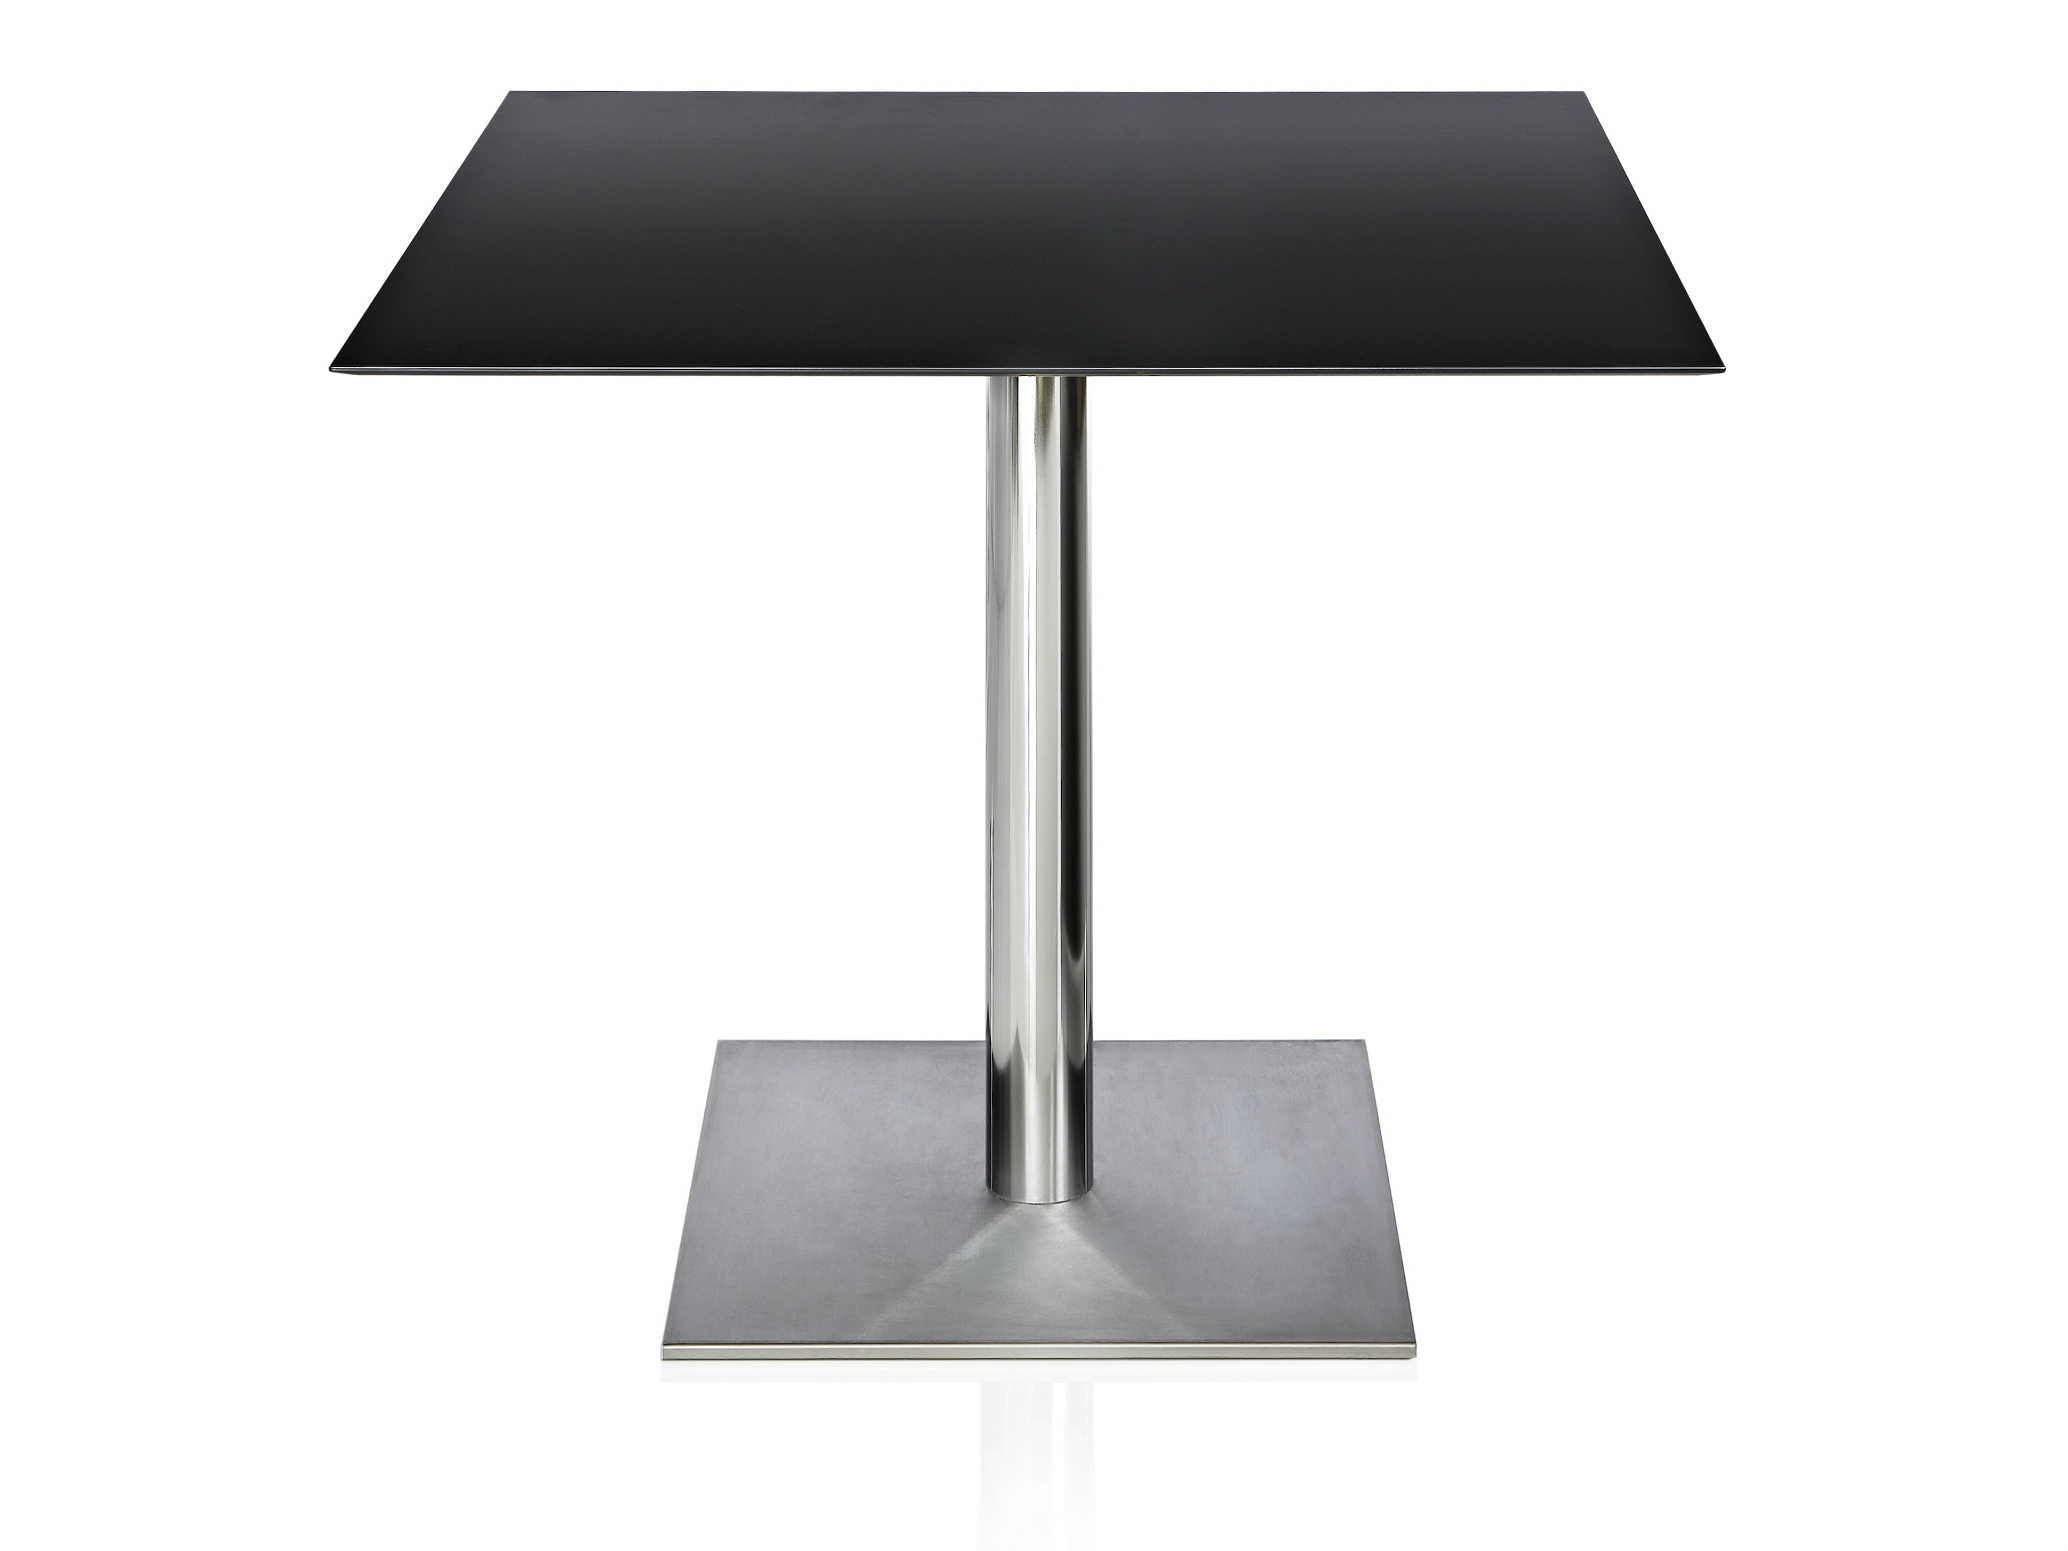 Priscilla square table by alma design design design for Restaurant table menu